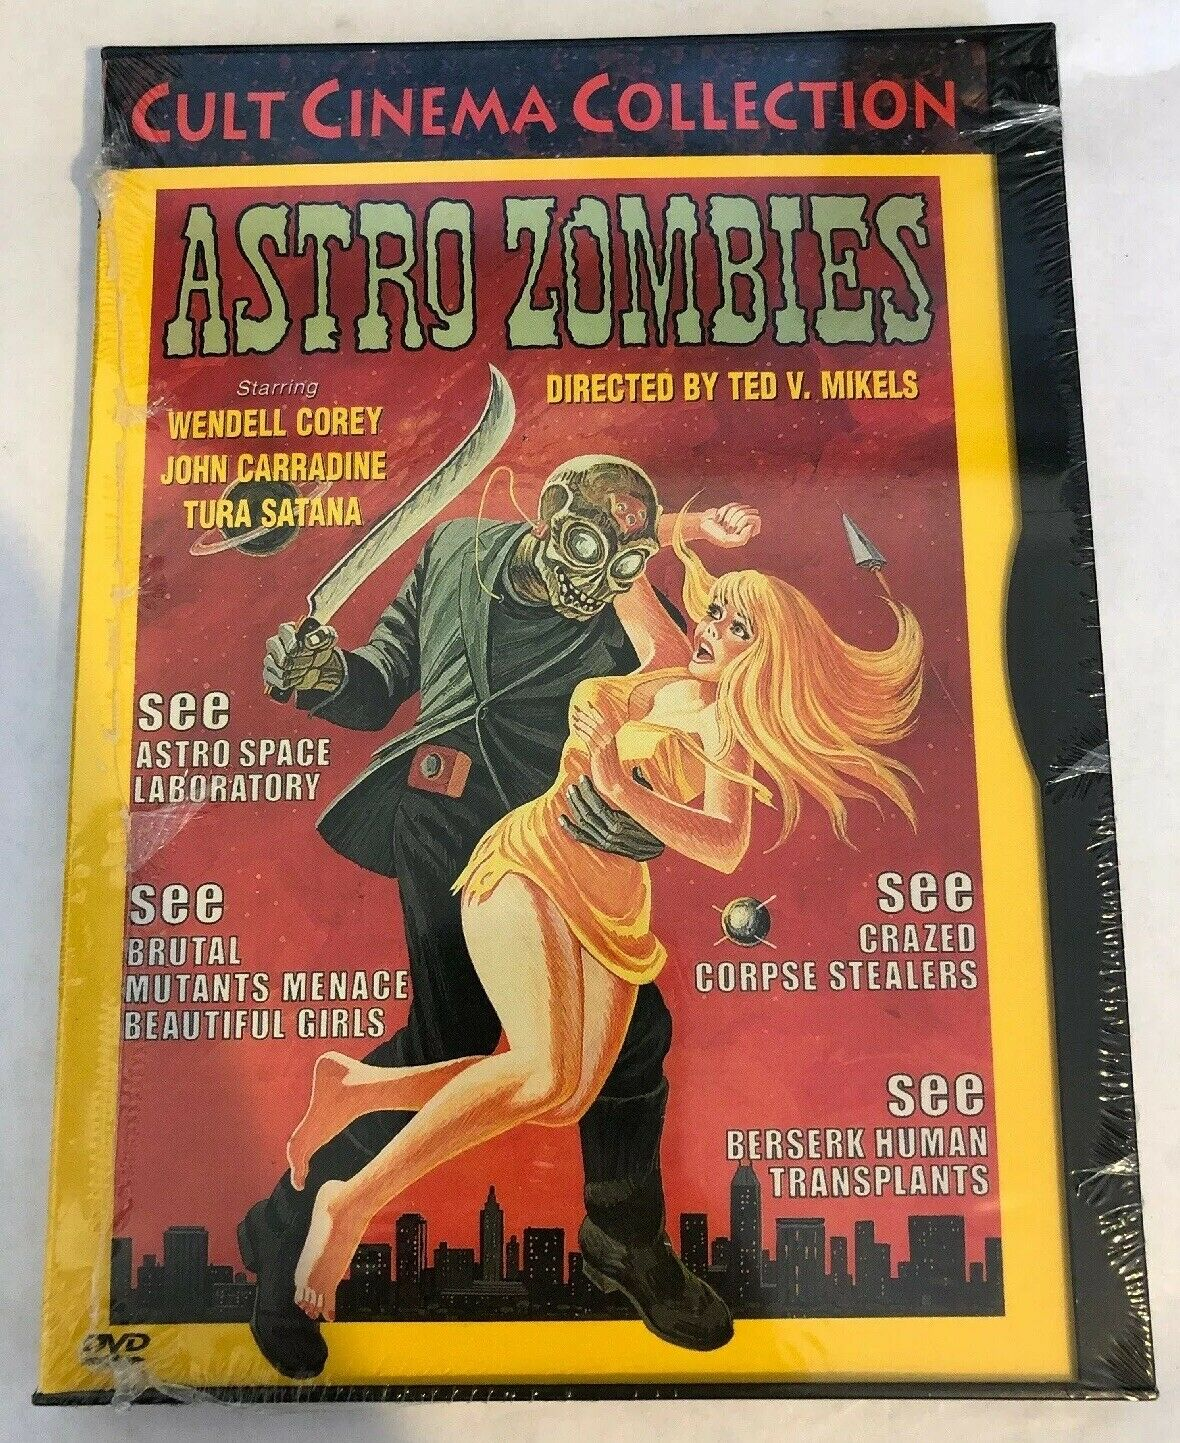 ASTRO ZOMBIES MOVIE POSTER Terrifying RARE HOT NEW 2